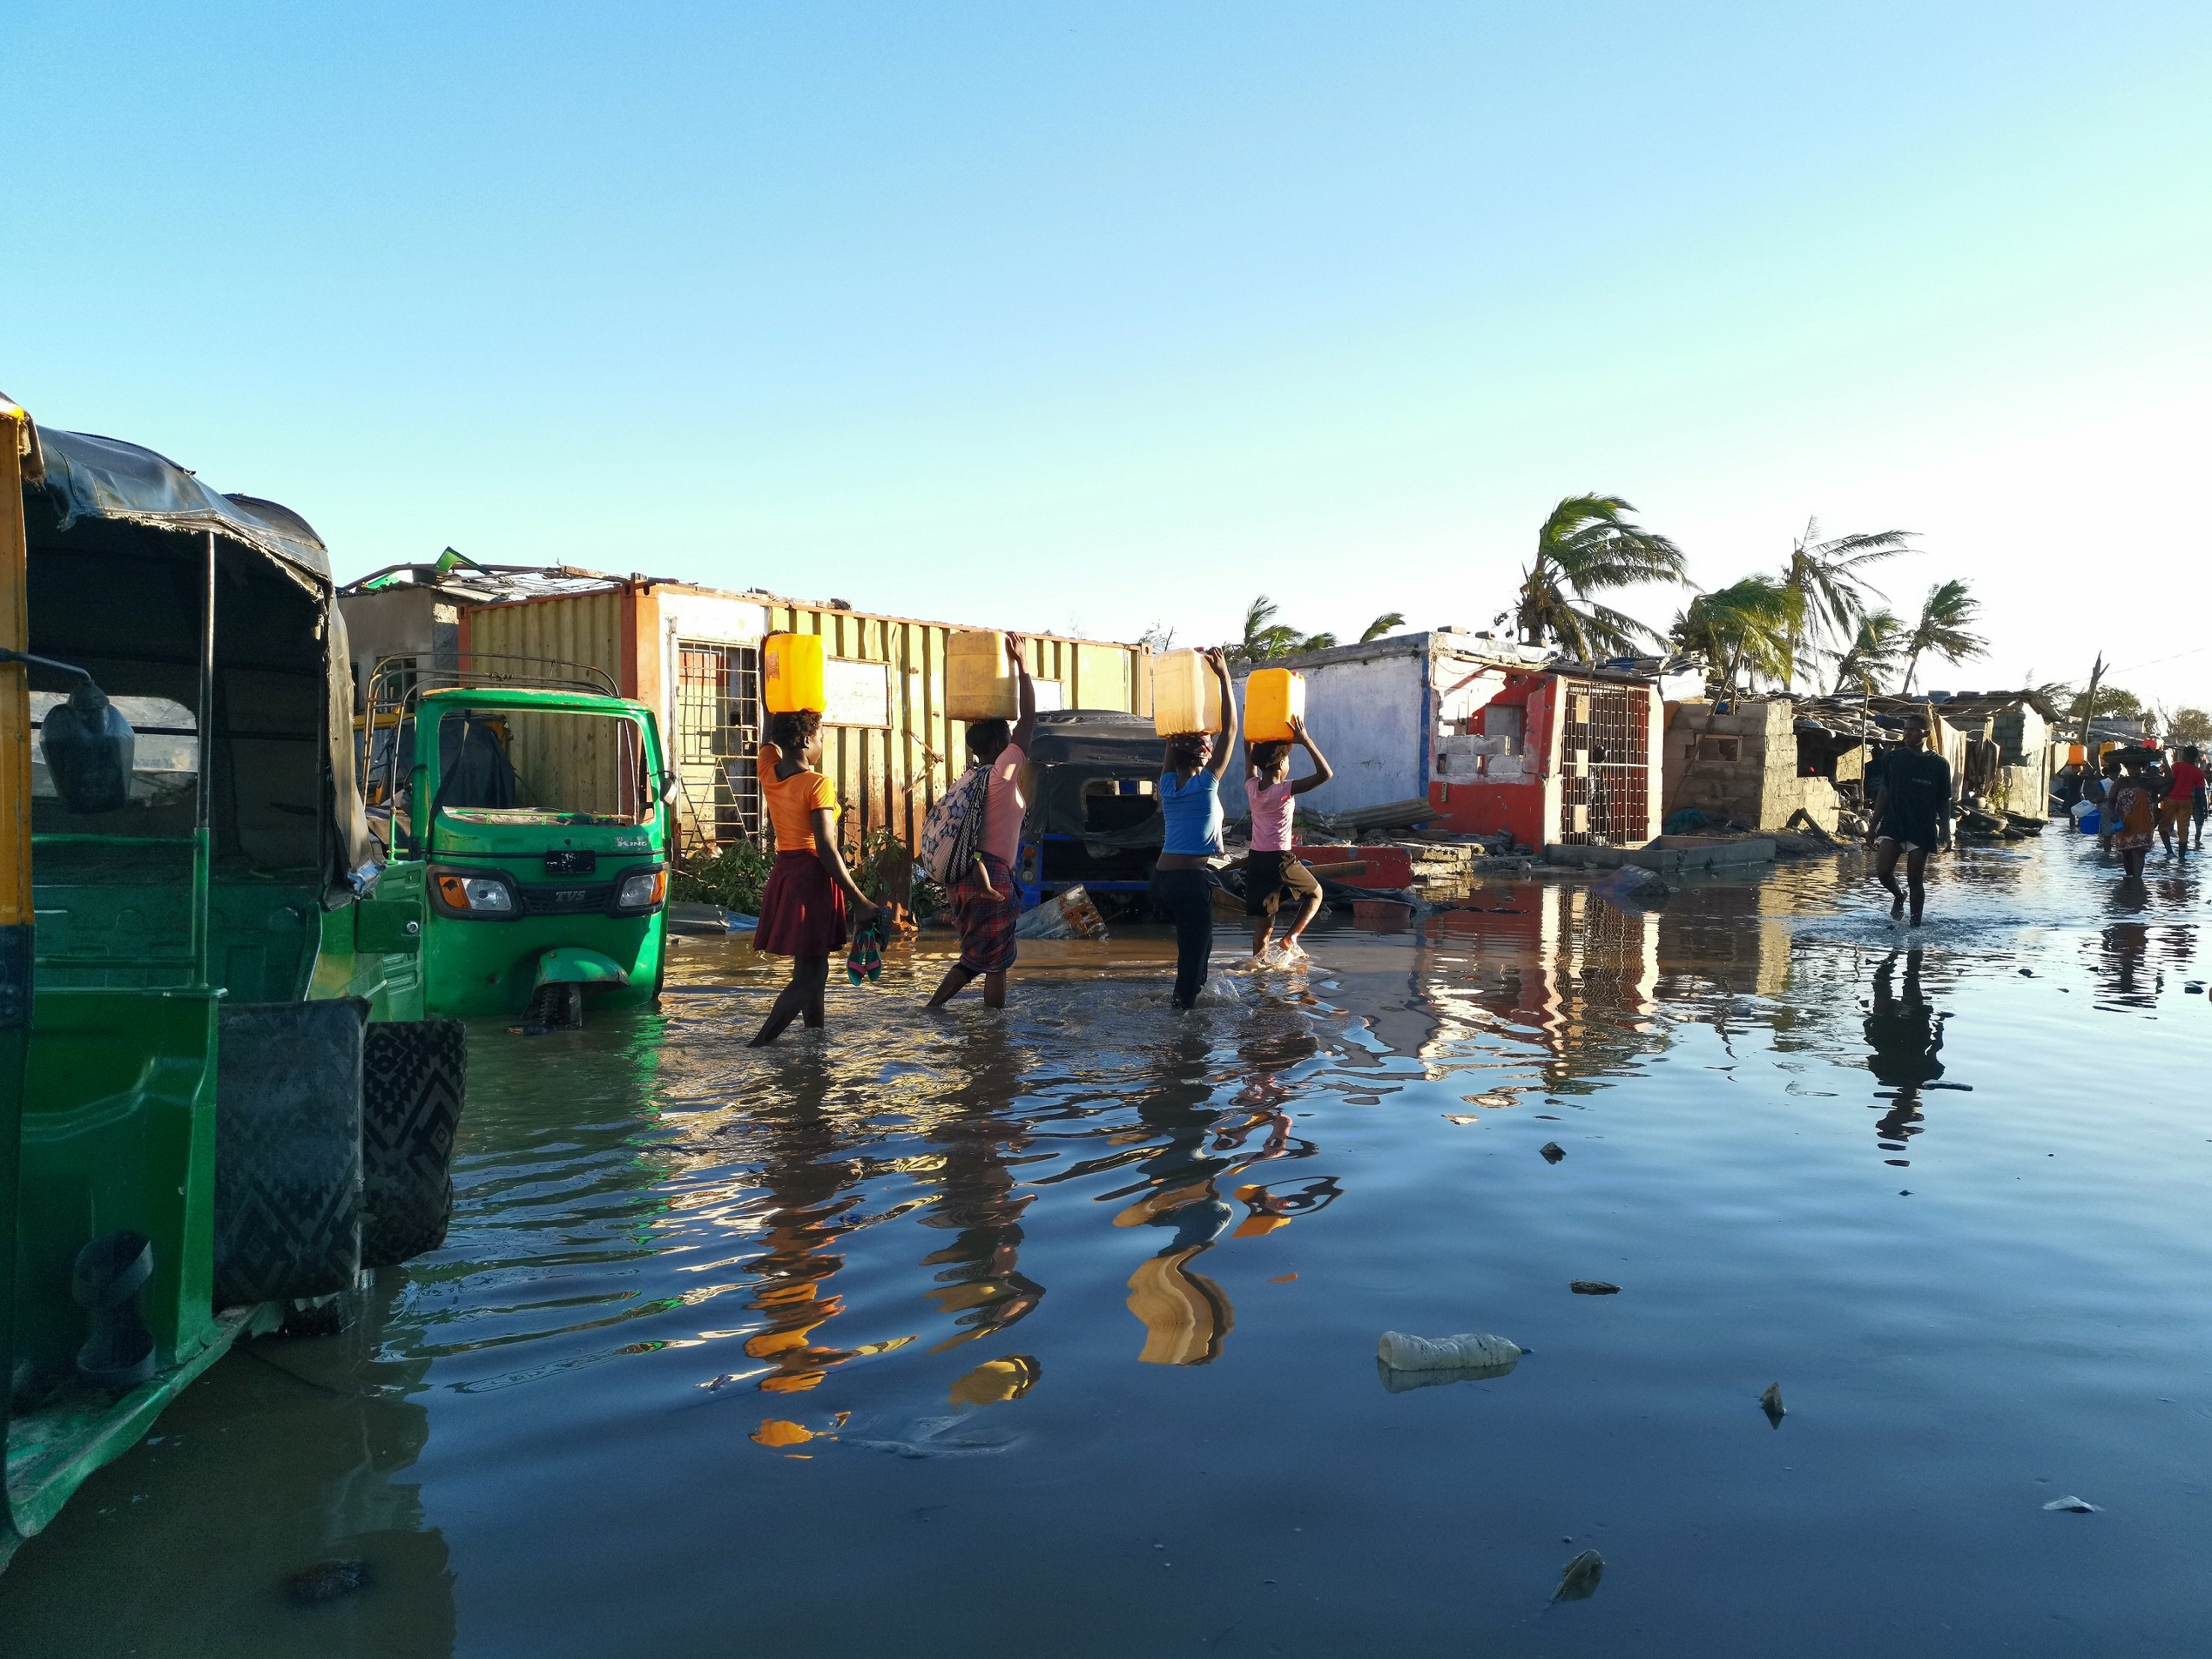 Survivors of Cyclone Idai in Beira, Mozambique, face water and electricity shortages and are at risk of waterbourne diseases carried in contaminated flood water. (Photo: Sergio Zimba/Oxfam)